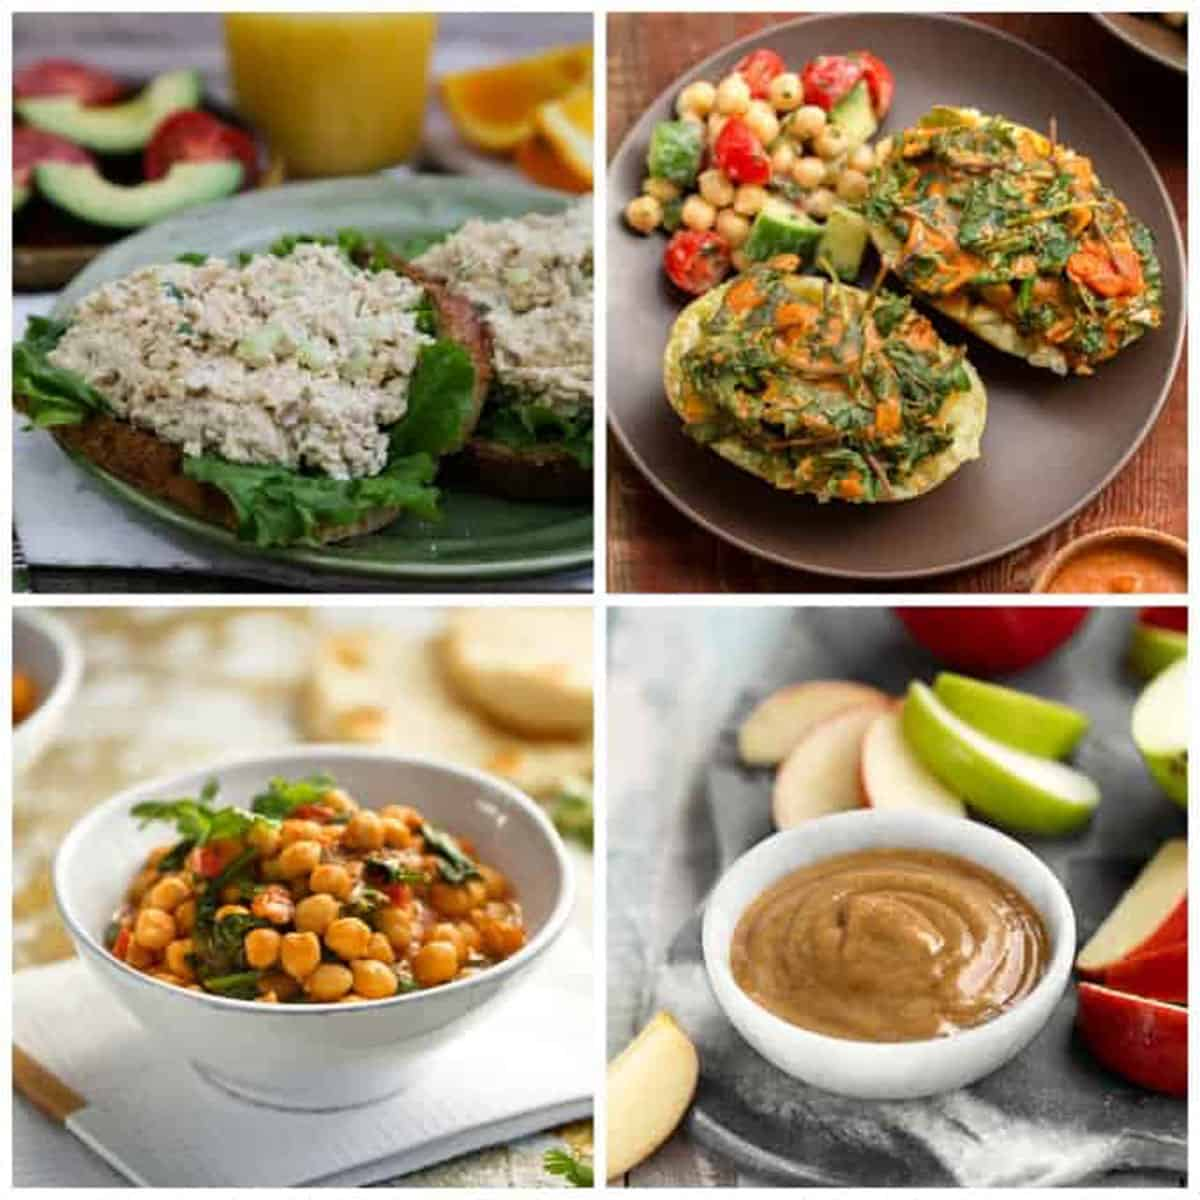 4 photo collage of a variety of recipes from the cookbook.